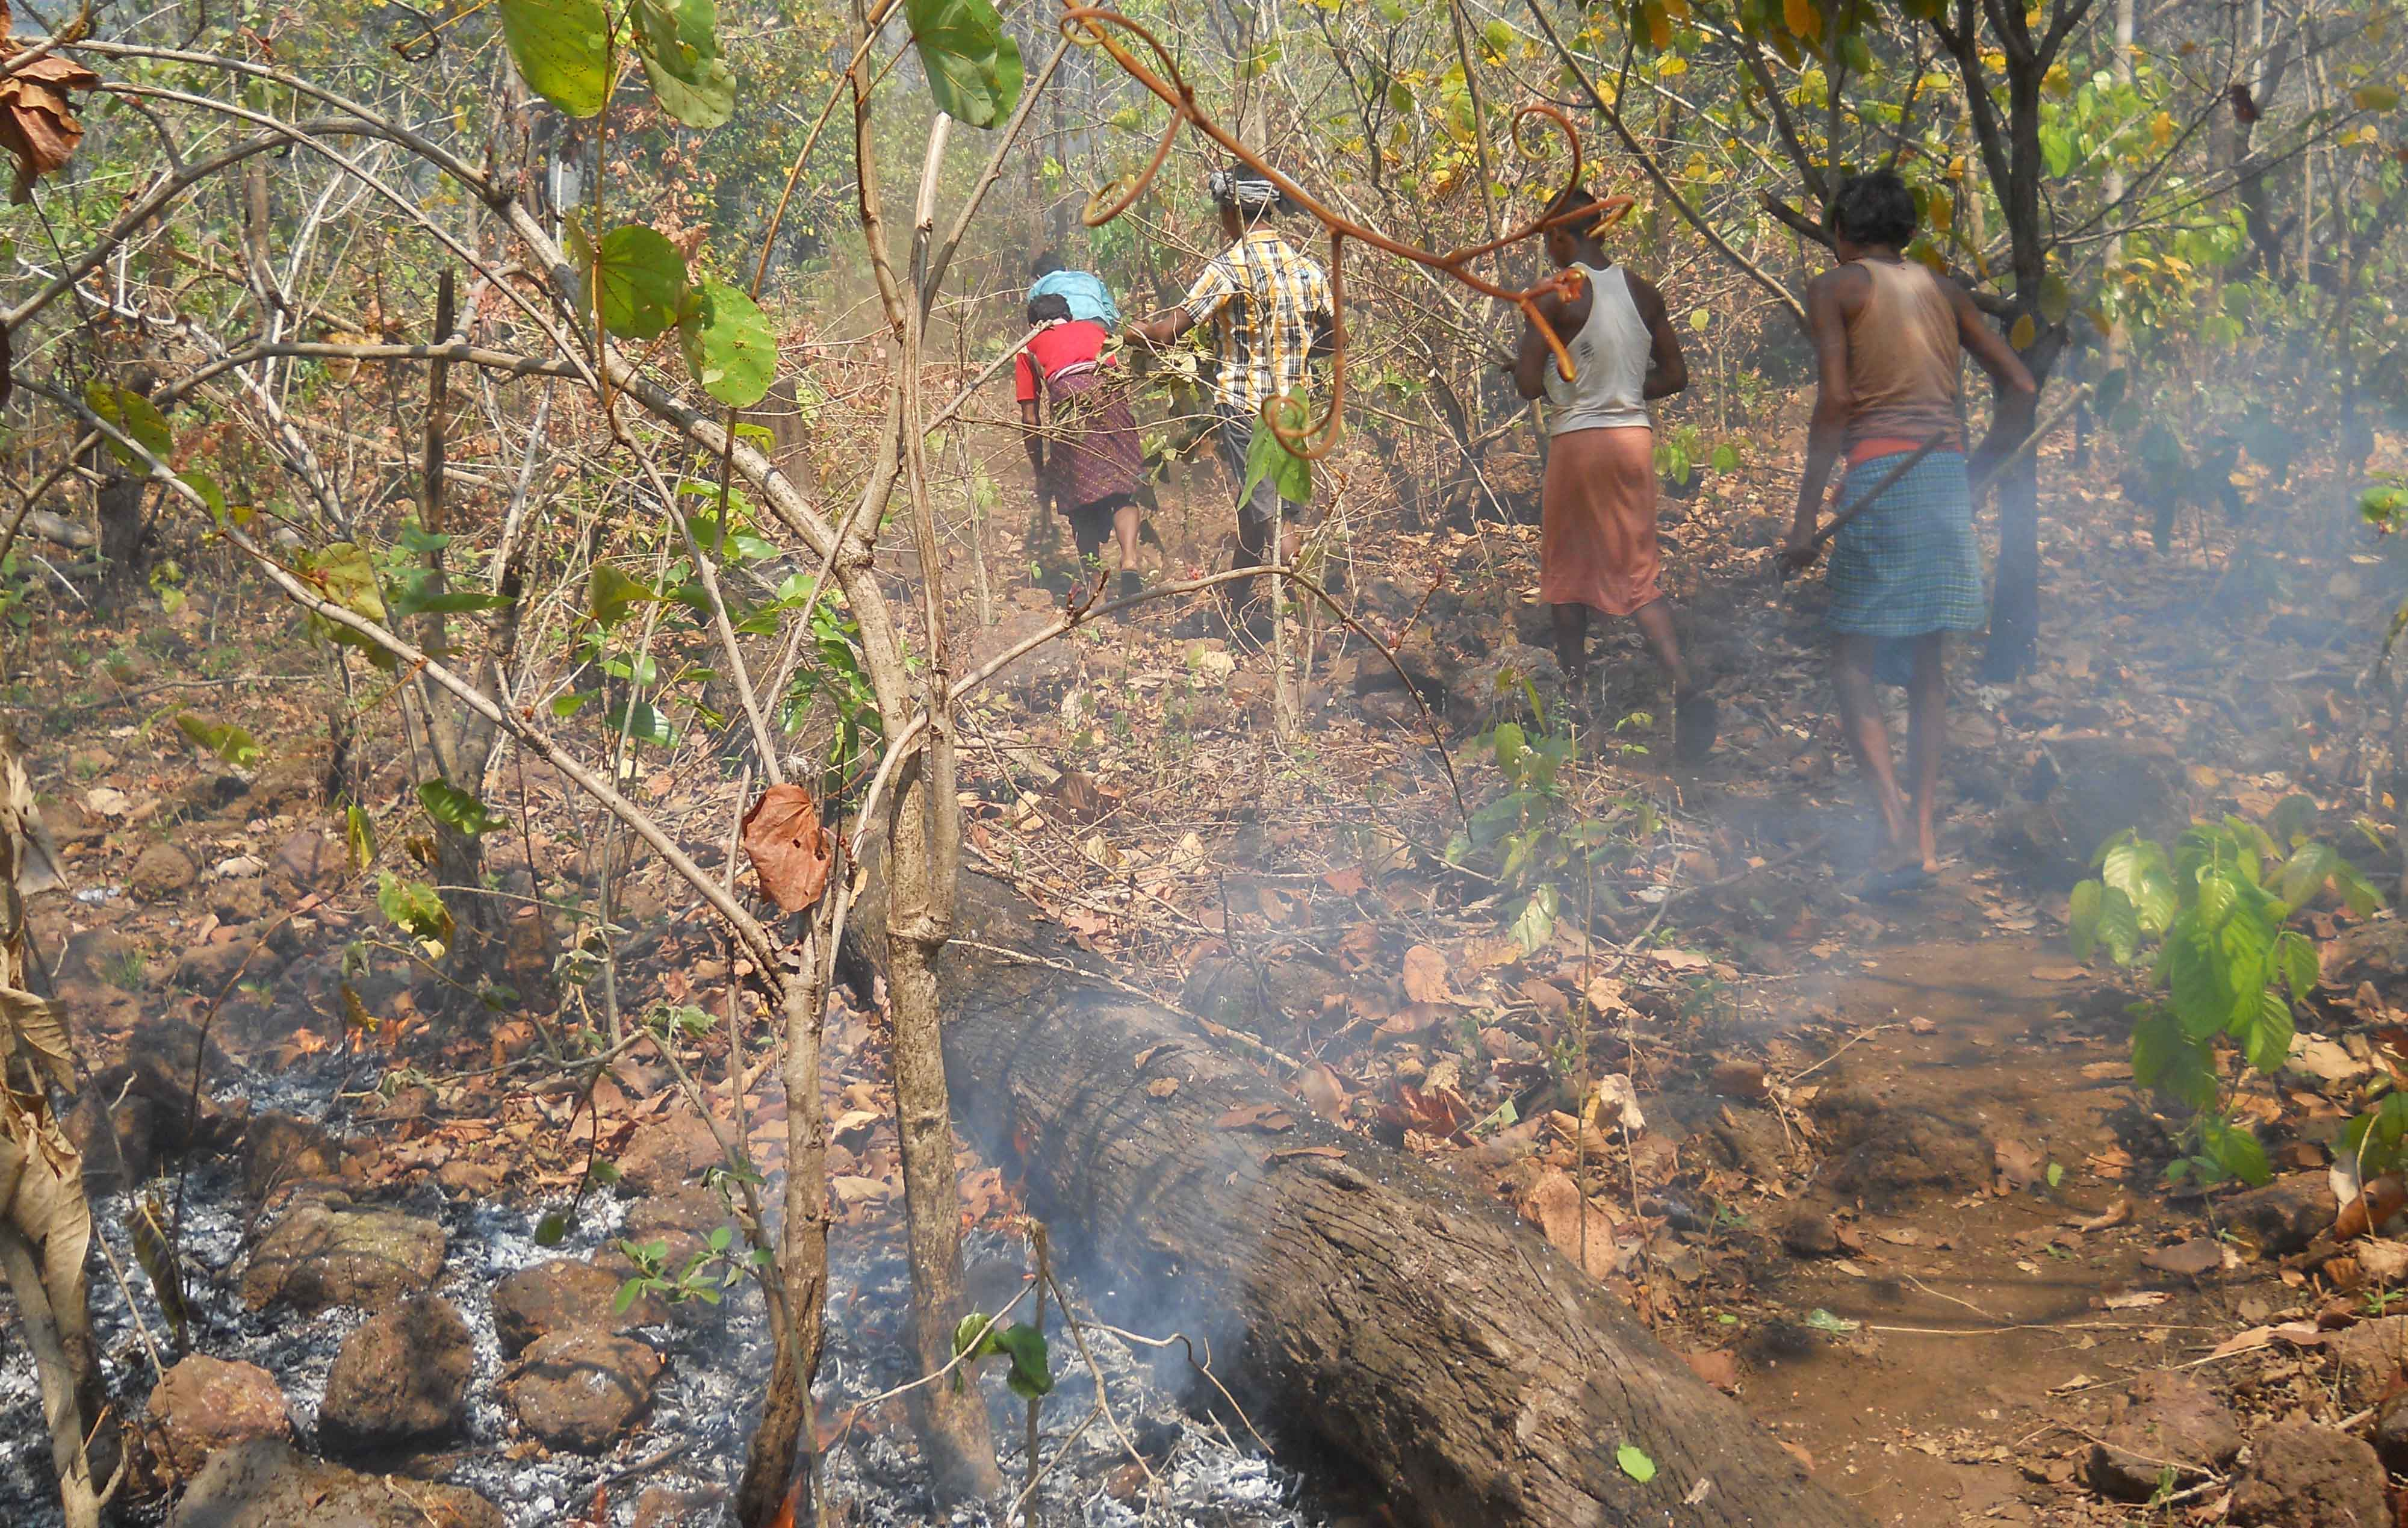 Community members extinguishing fire in jungle